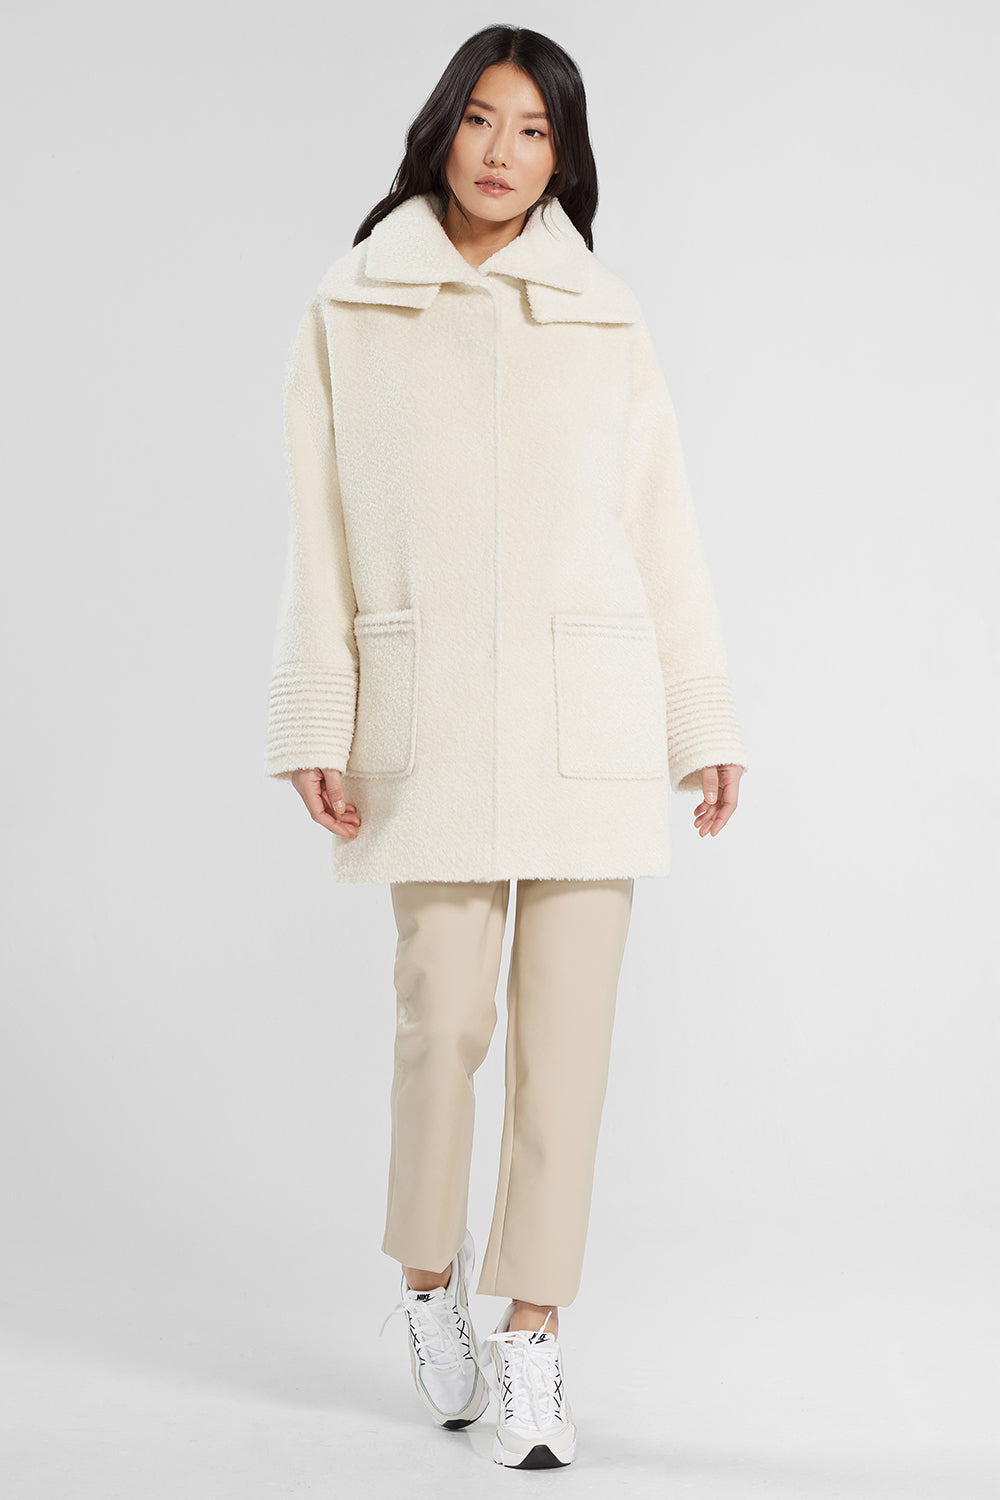 Sentaler Bouclé Alpaca Mid Length Oversized Coat with Signature Double Collar featured in Bouclé Alpaca and available in Ivory. Seen from front.